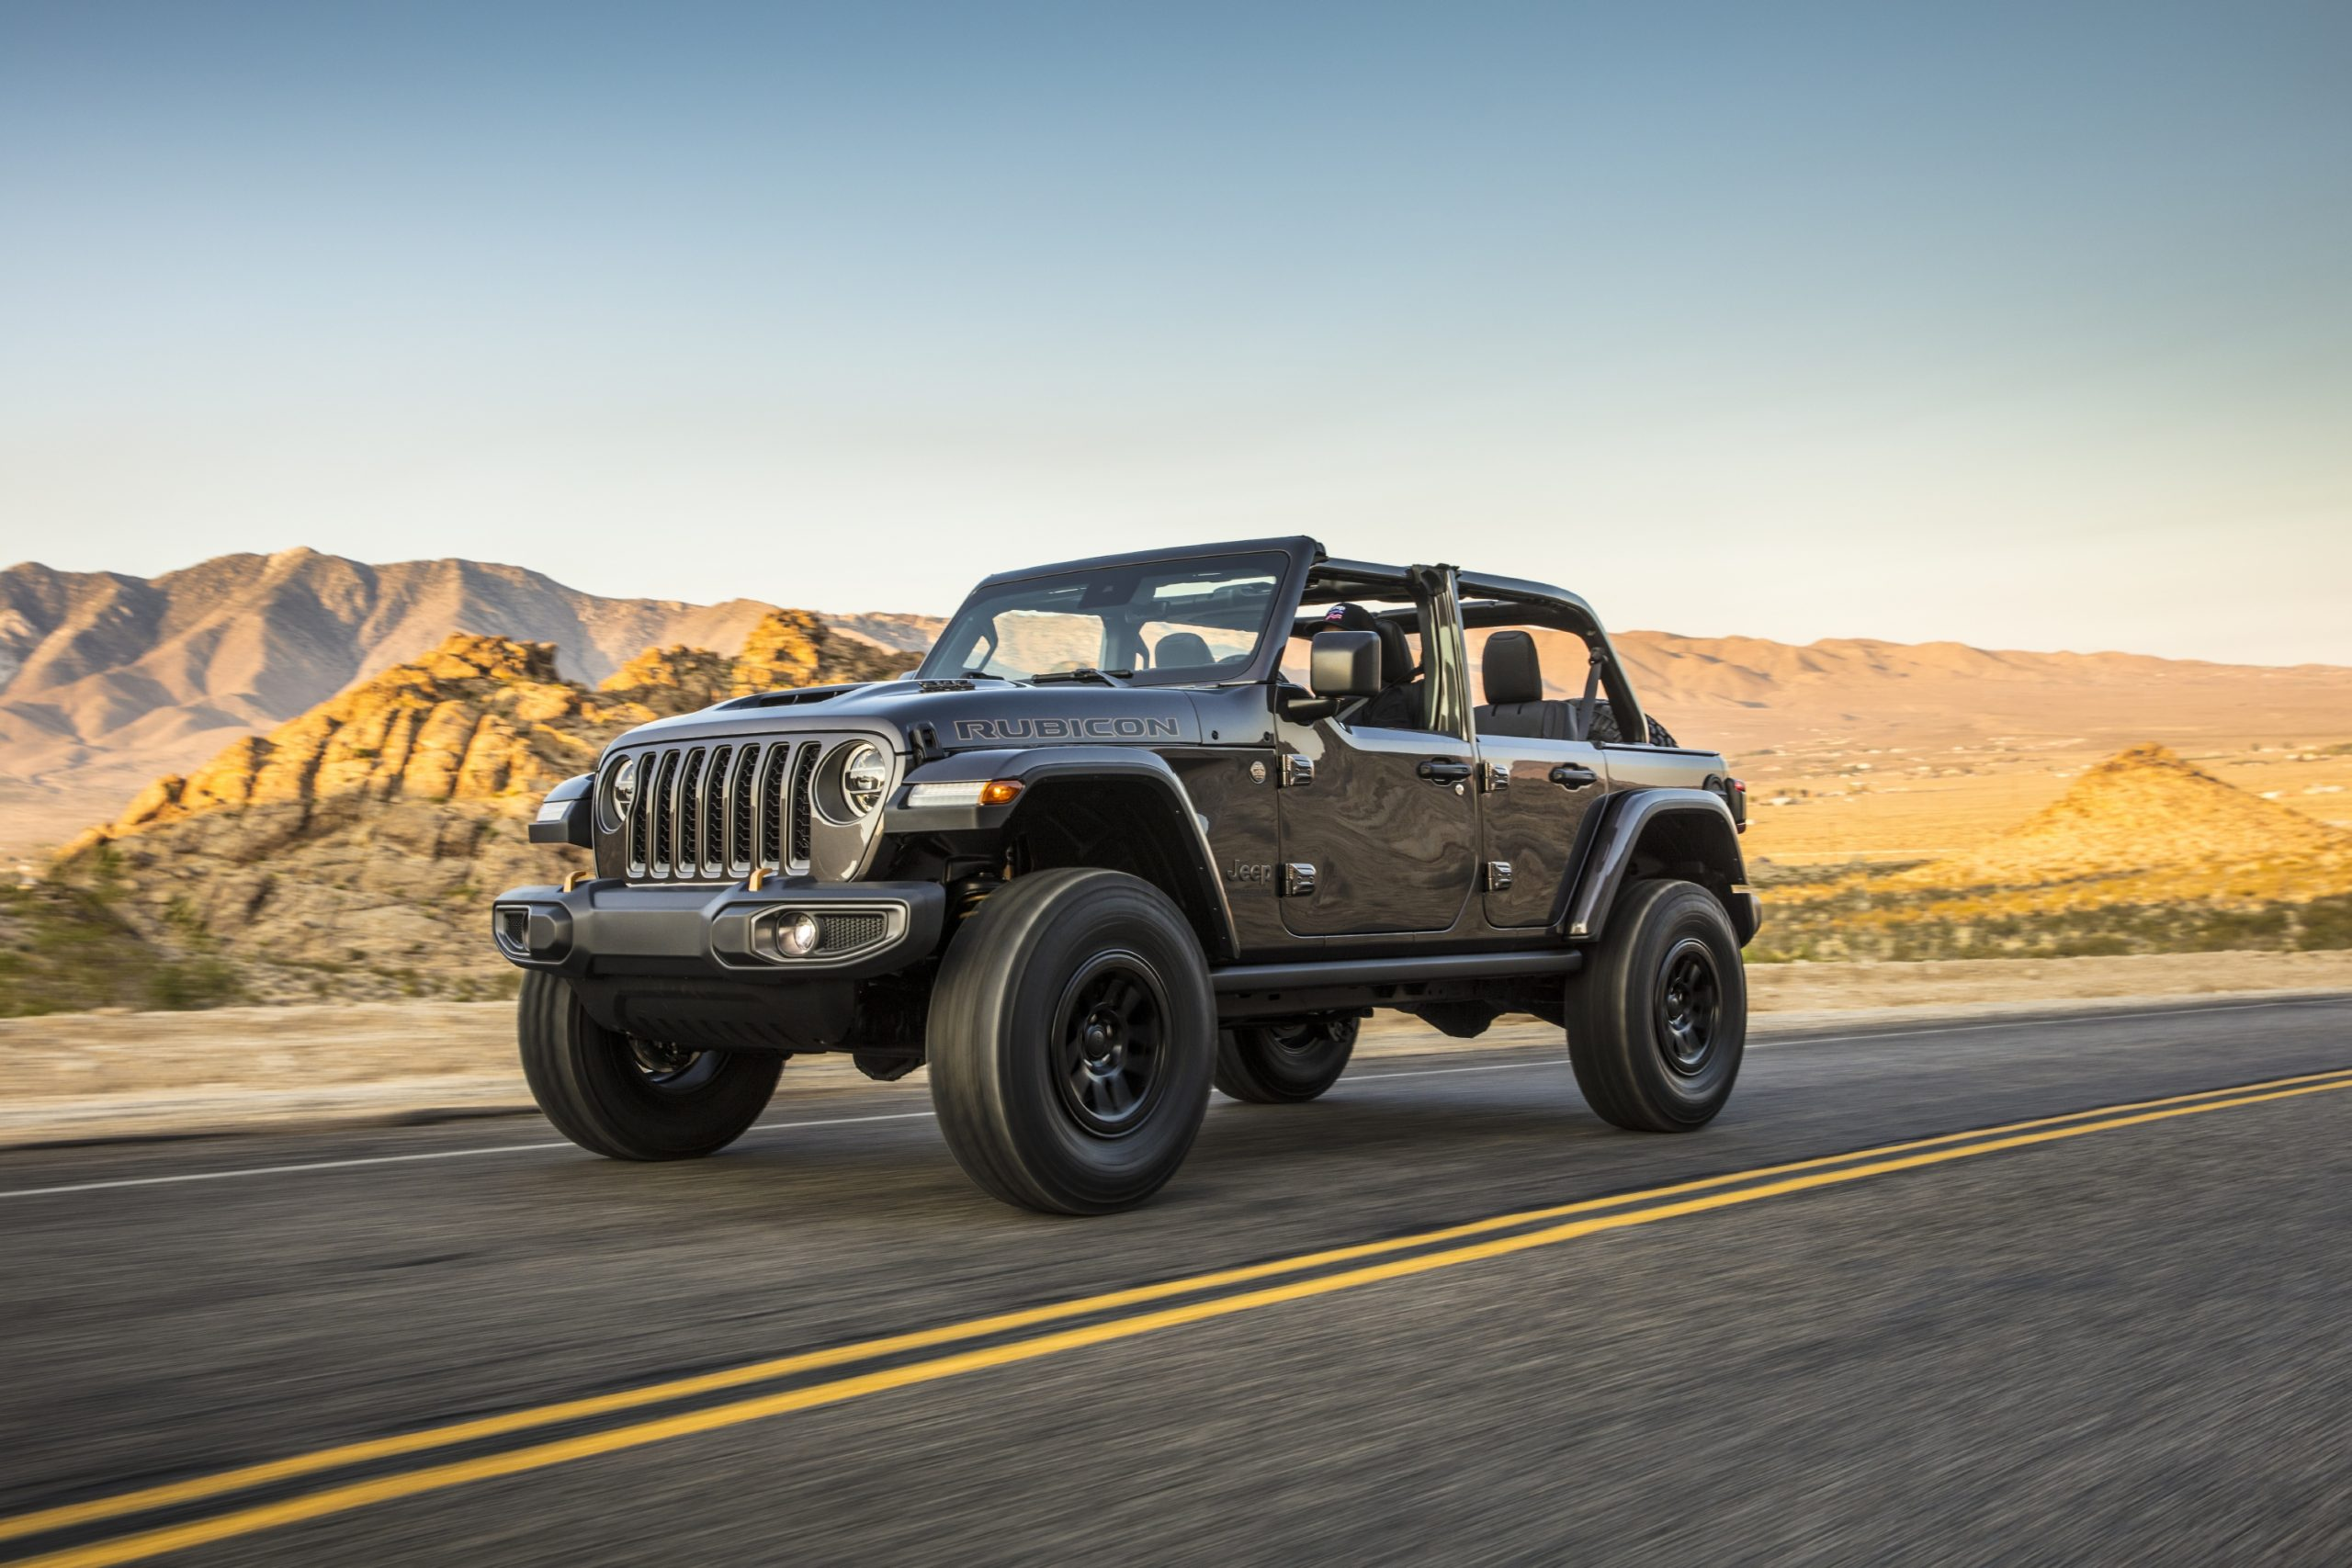 2021 Jeep Wrangler Rubicon 392 gray on road front three quarter moving